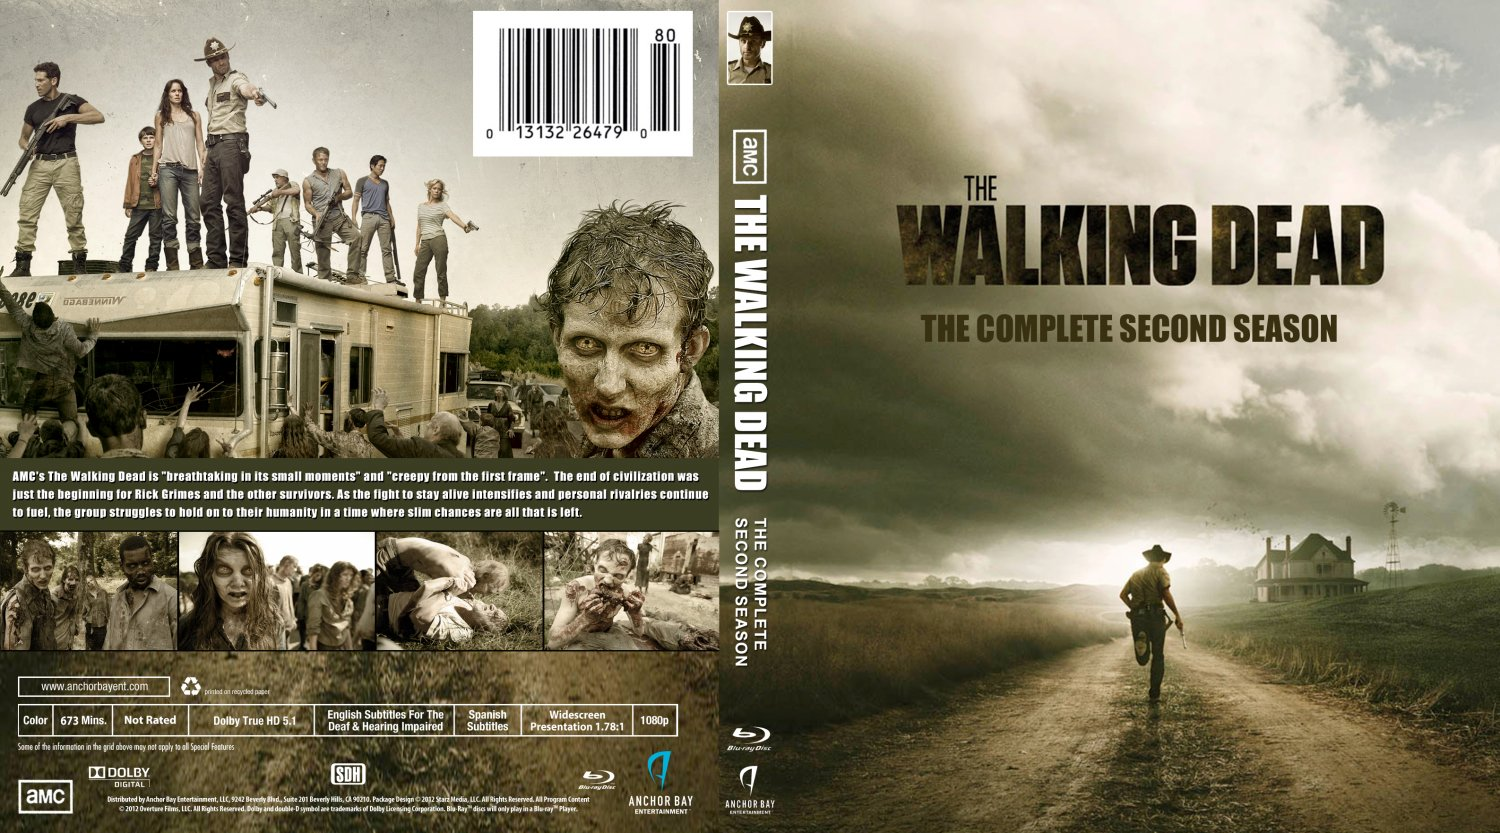 the walking dead season 2 walking dead s2 br date 05 21 2012 size